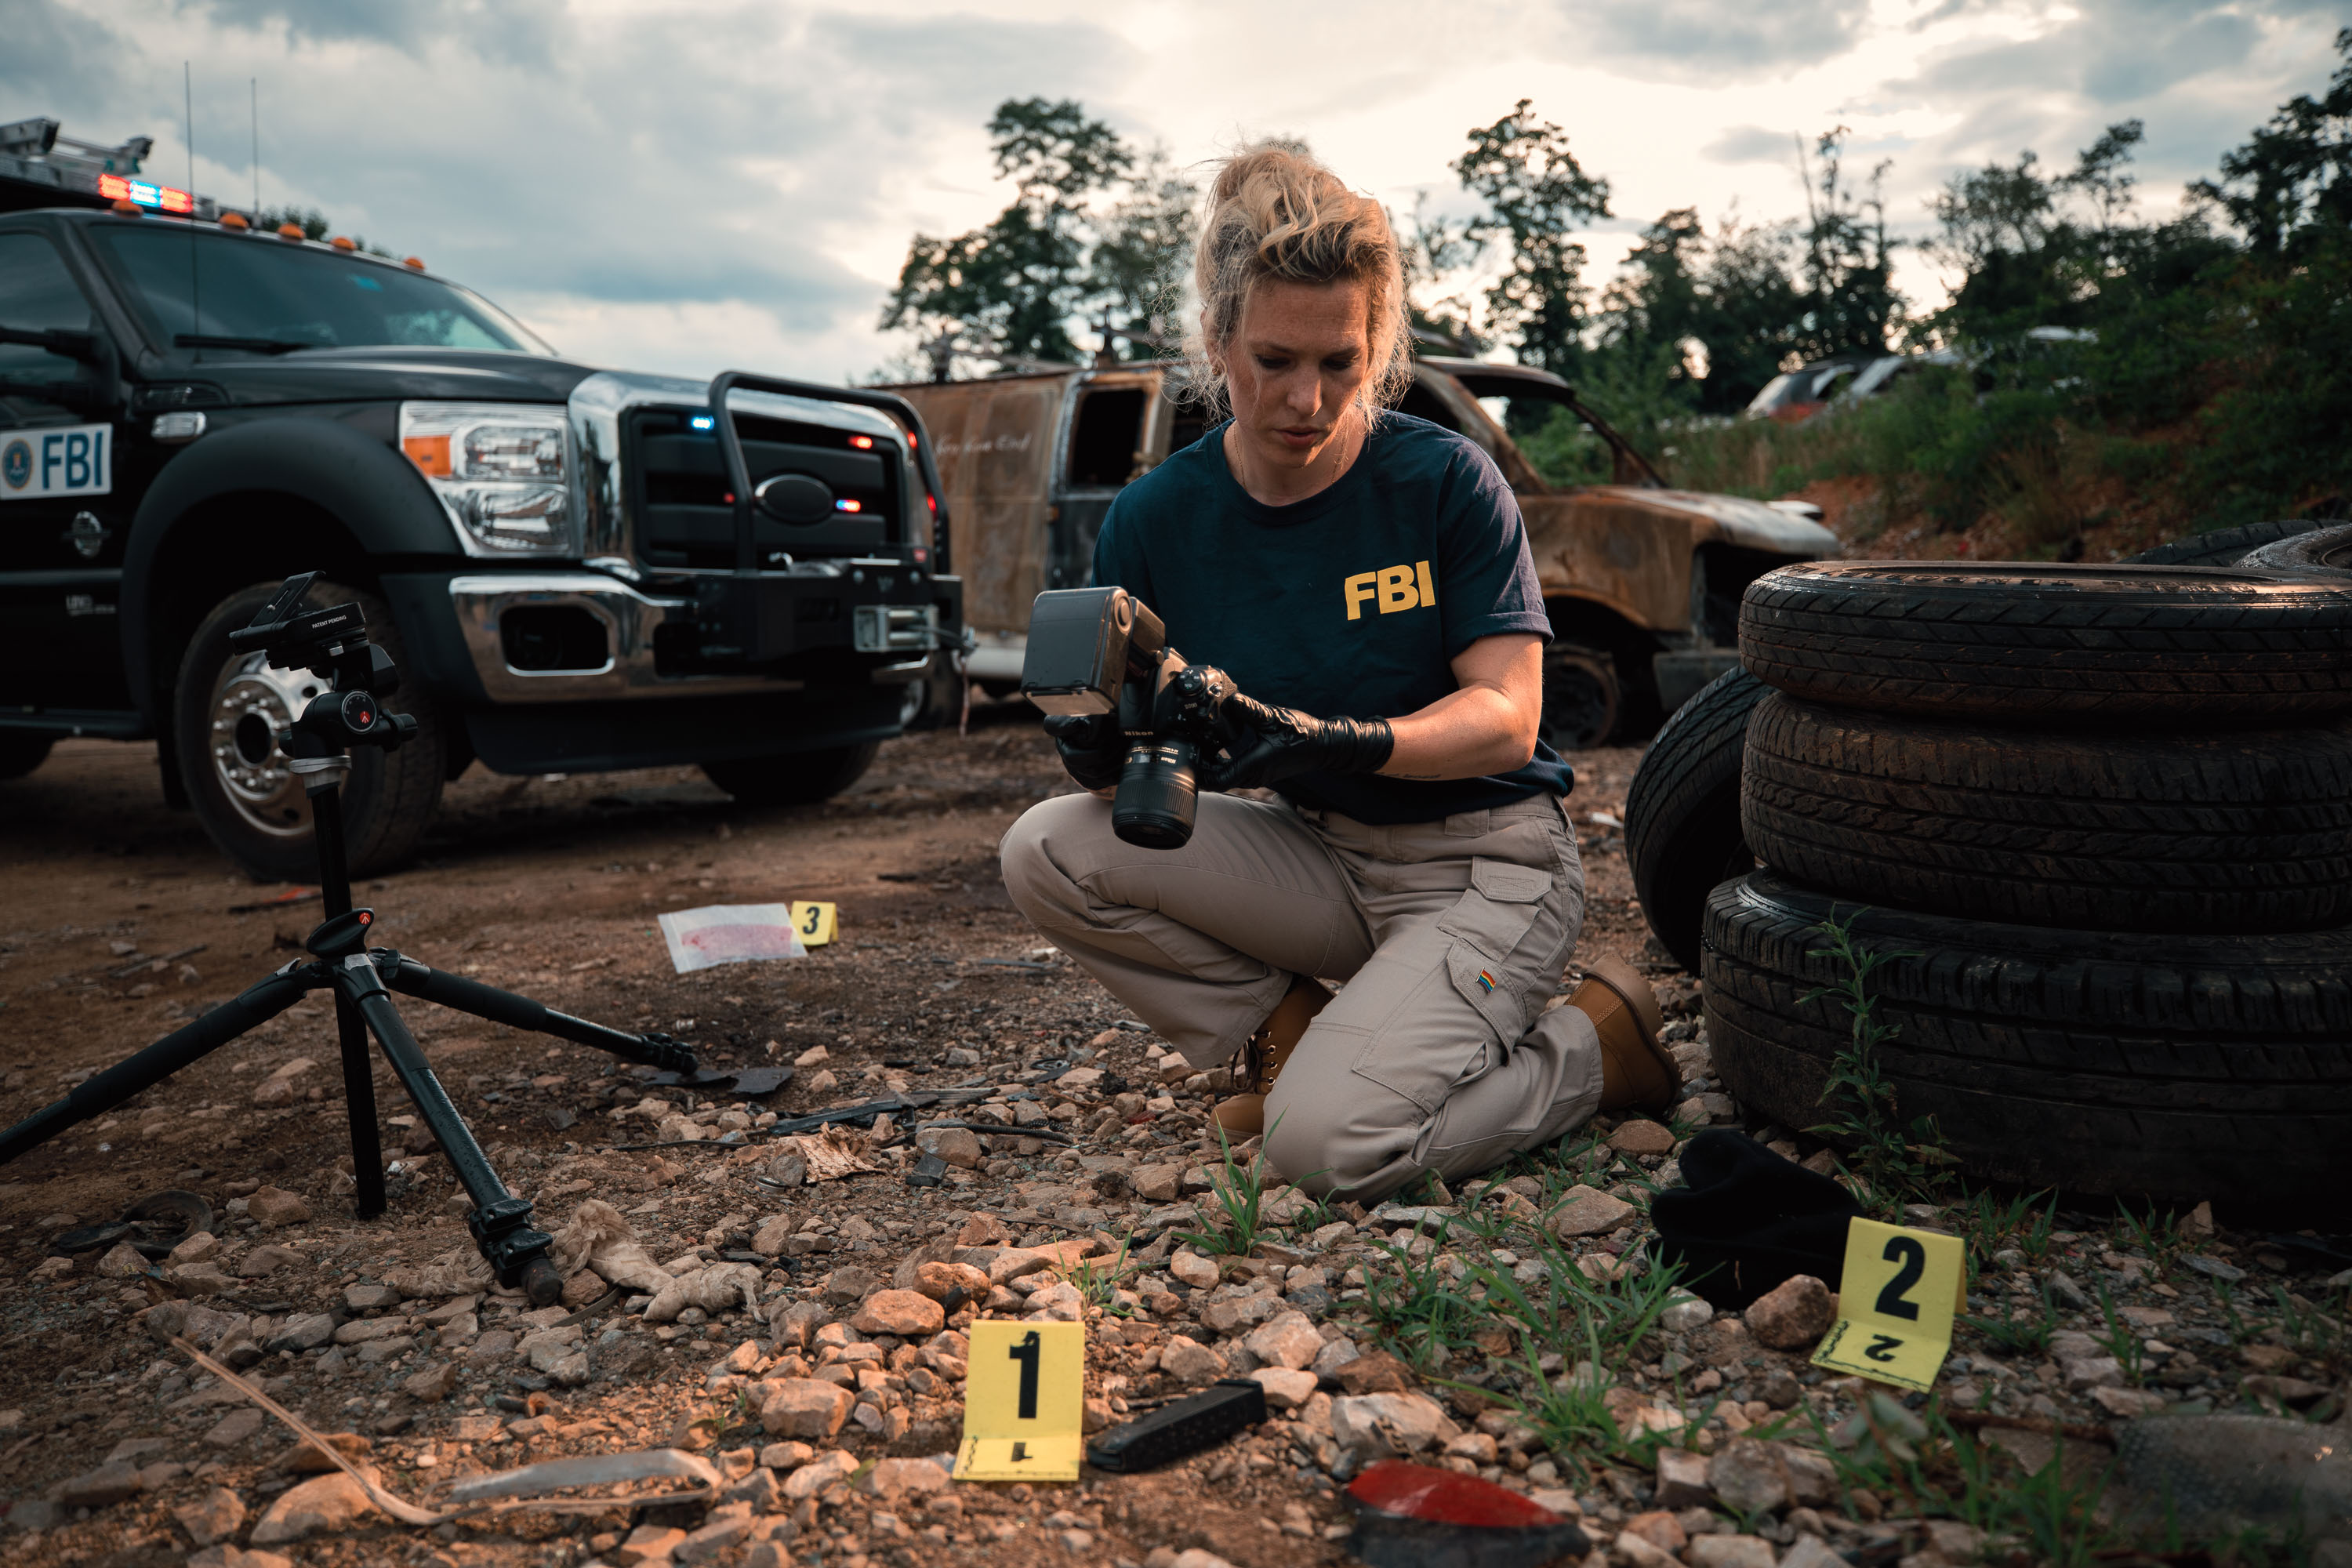 ClarkV_200712_200712_FBI_Junkyard_0237_edit